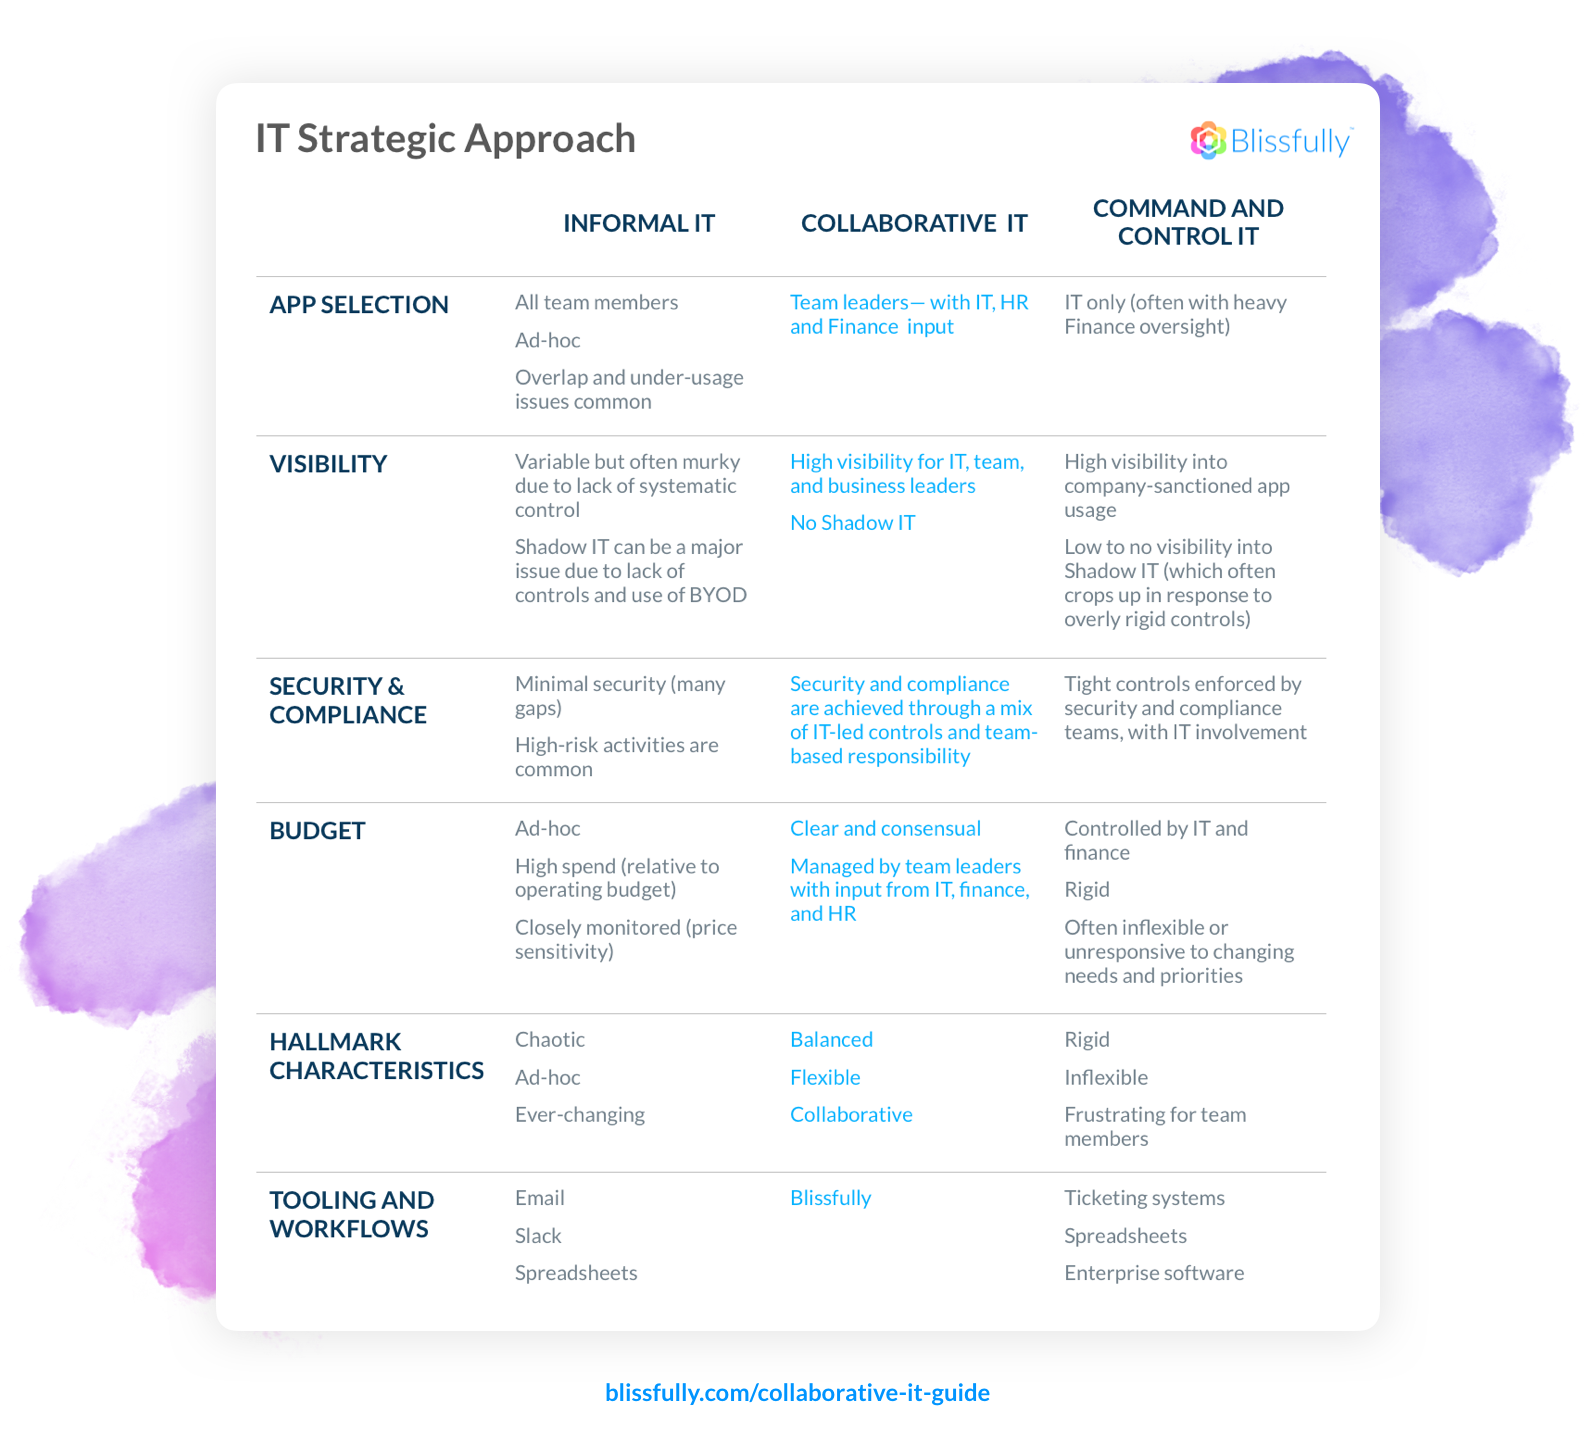 Chart of IT Strategic Approaches